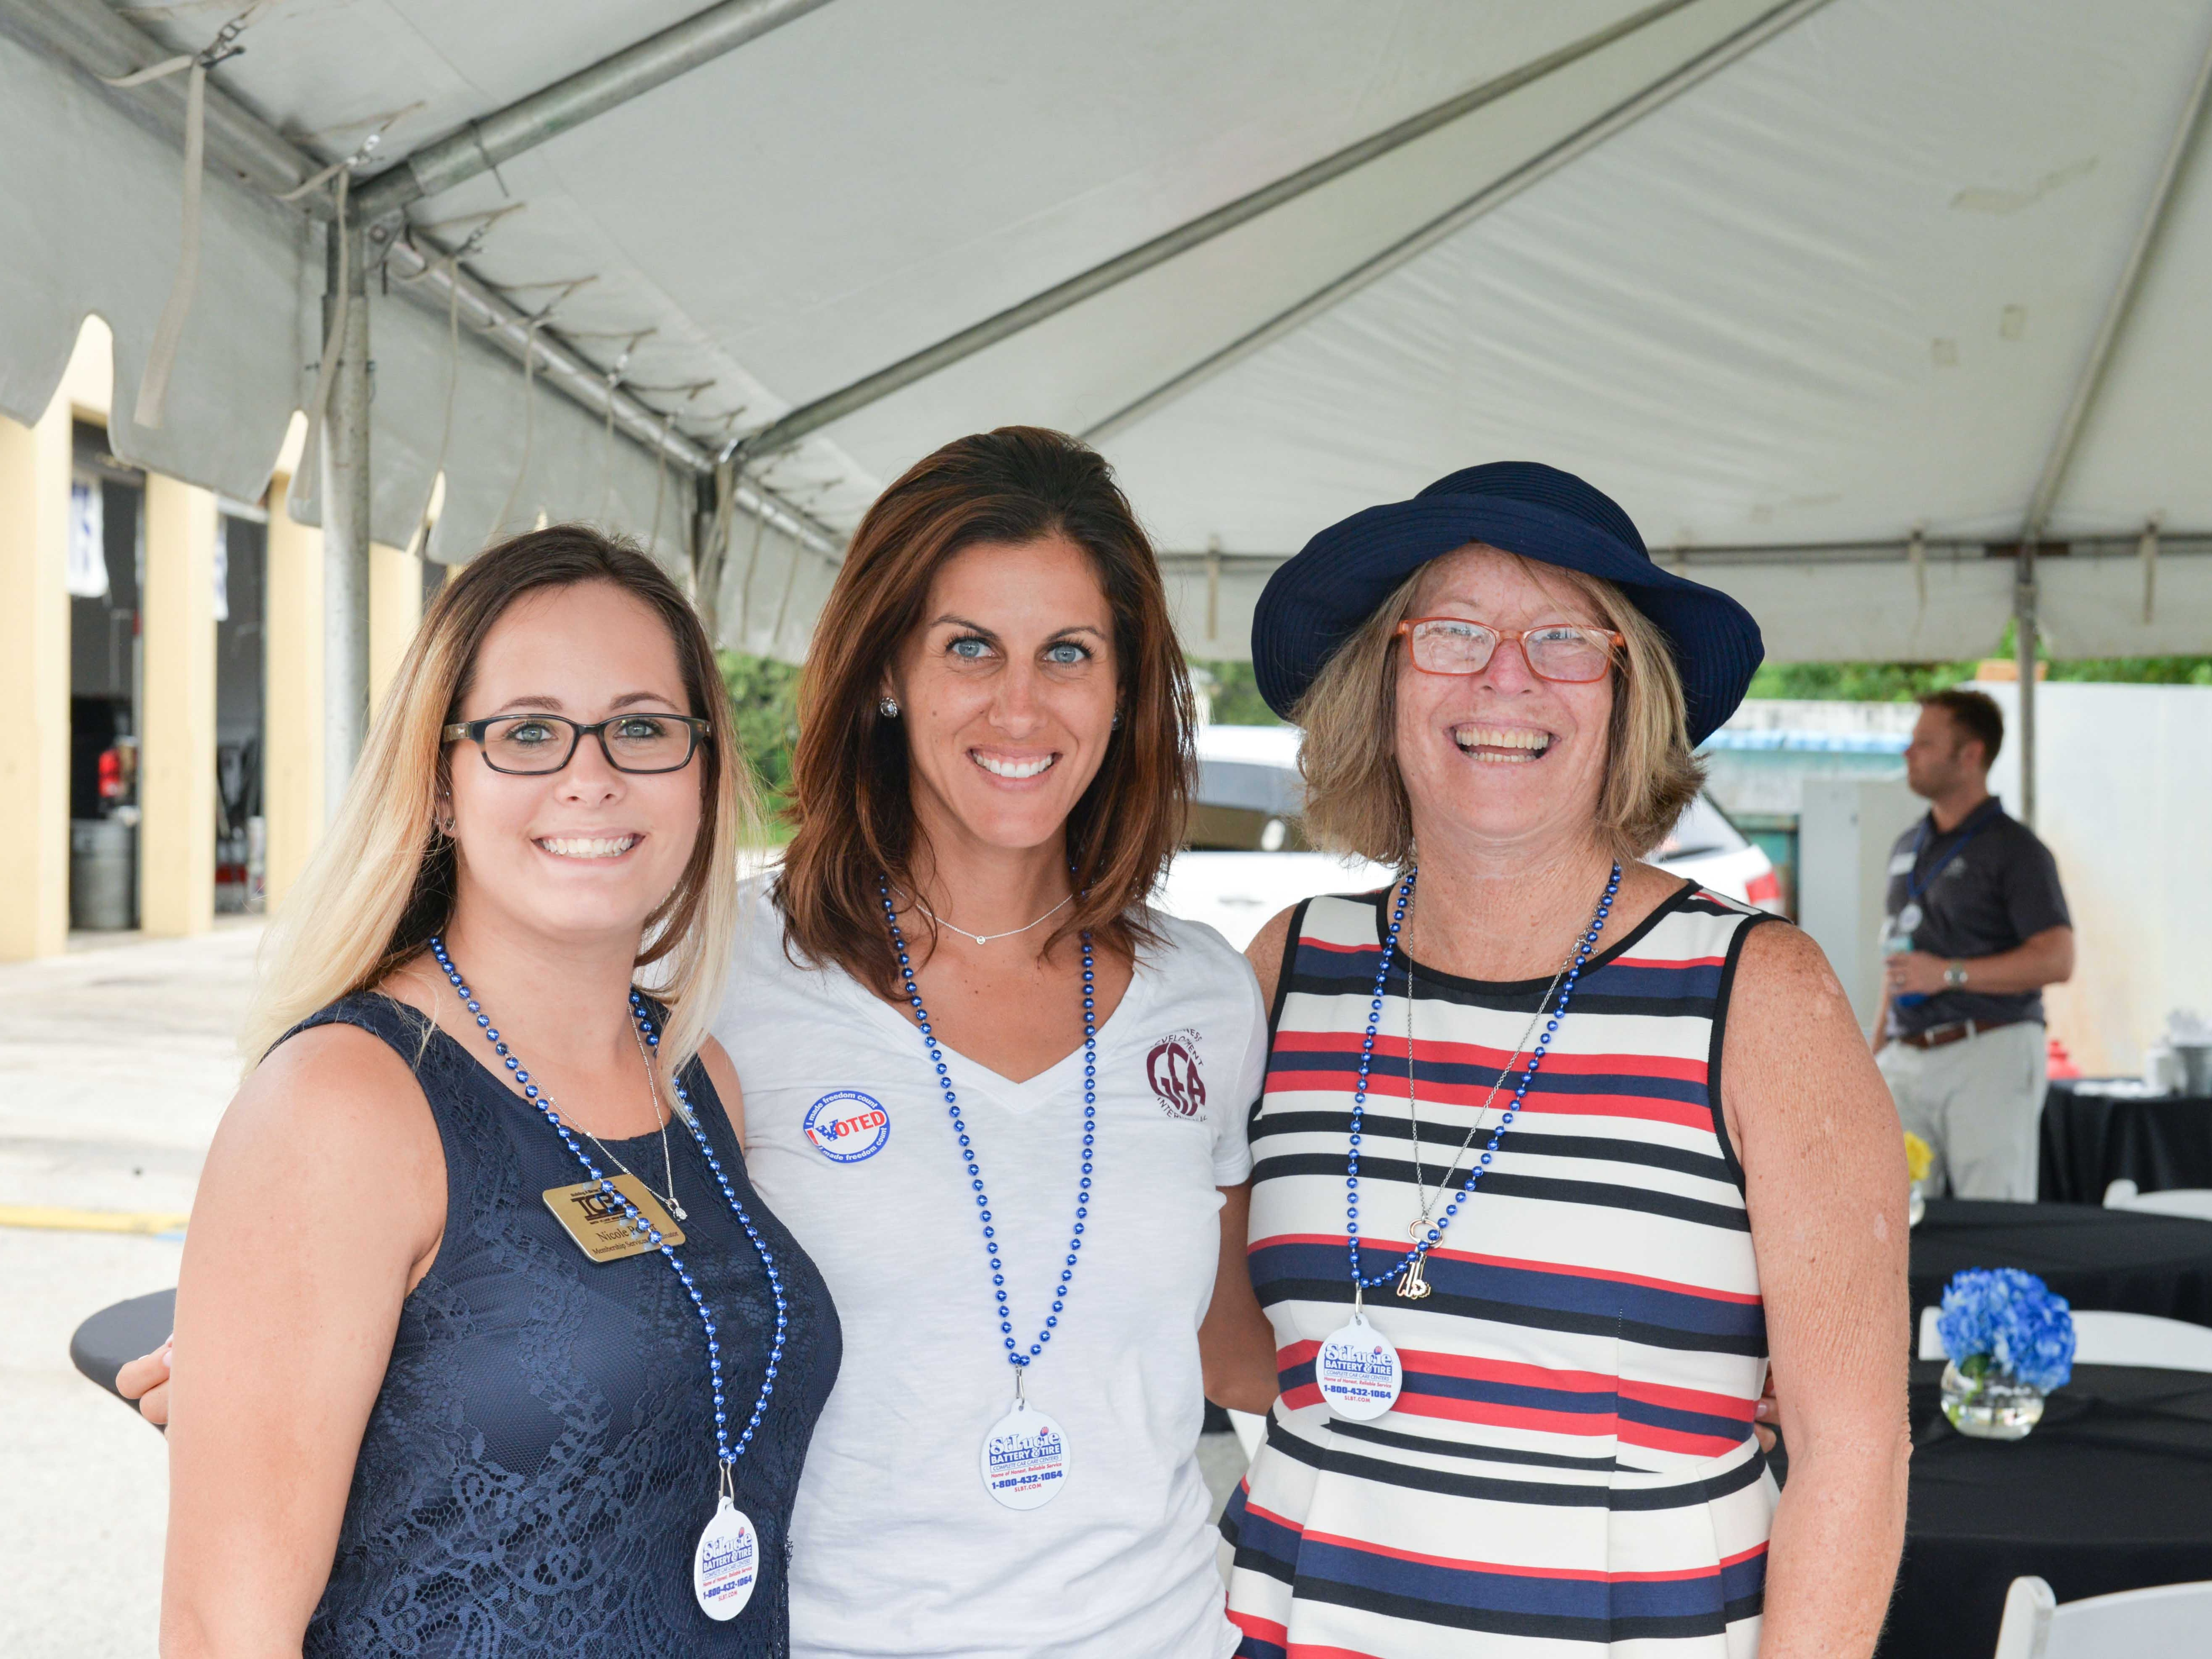 Nicole Porter, Dayna Izzo and Patti Hancock at the Treasure Coast Builders Association's Fun After Five networking event.